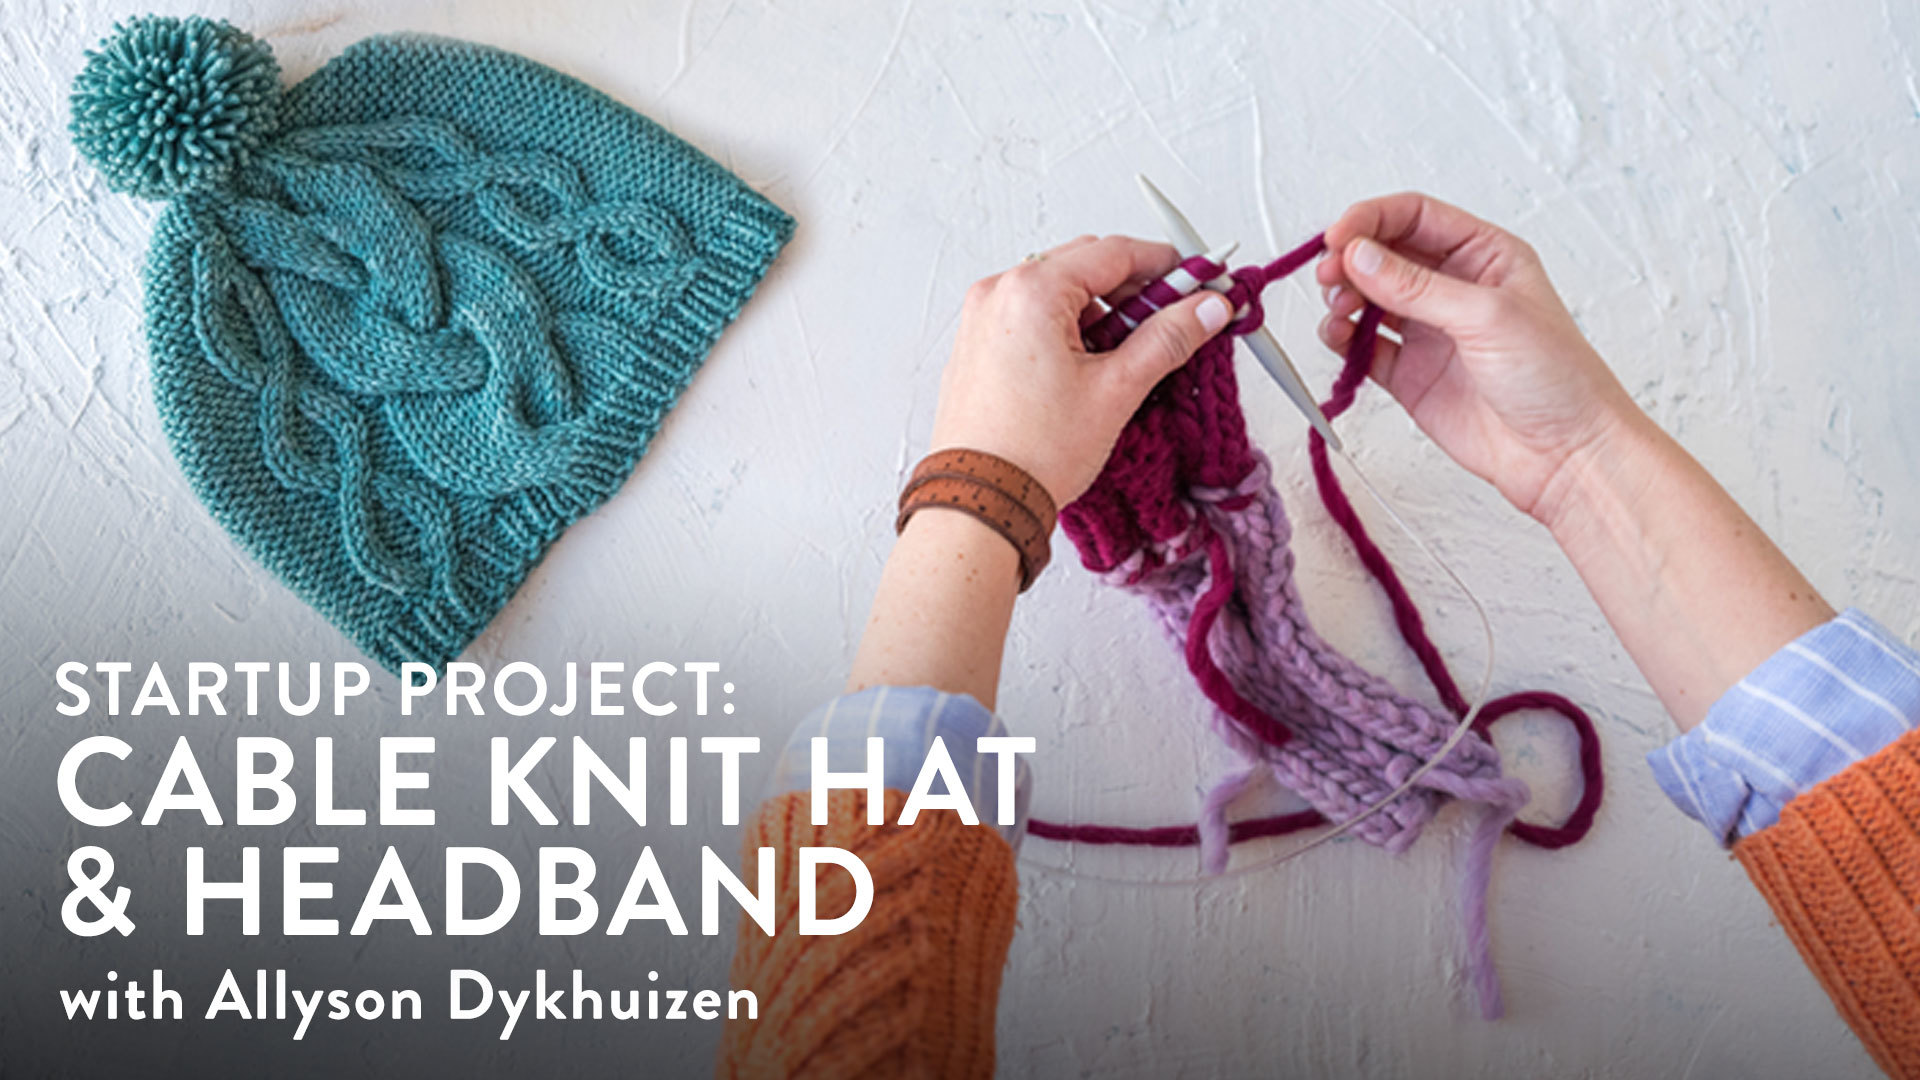 Startup Project: Cable Knit Hat & Headband